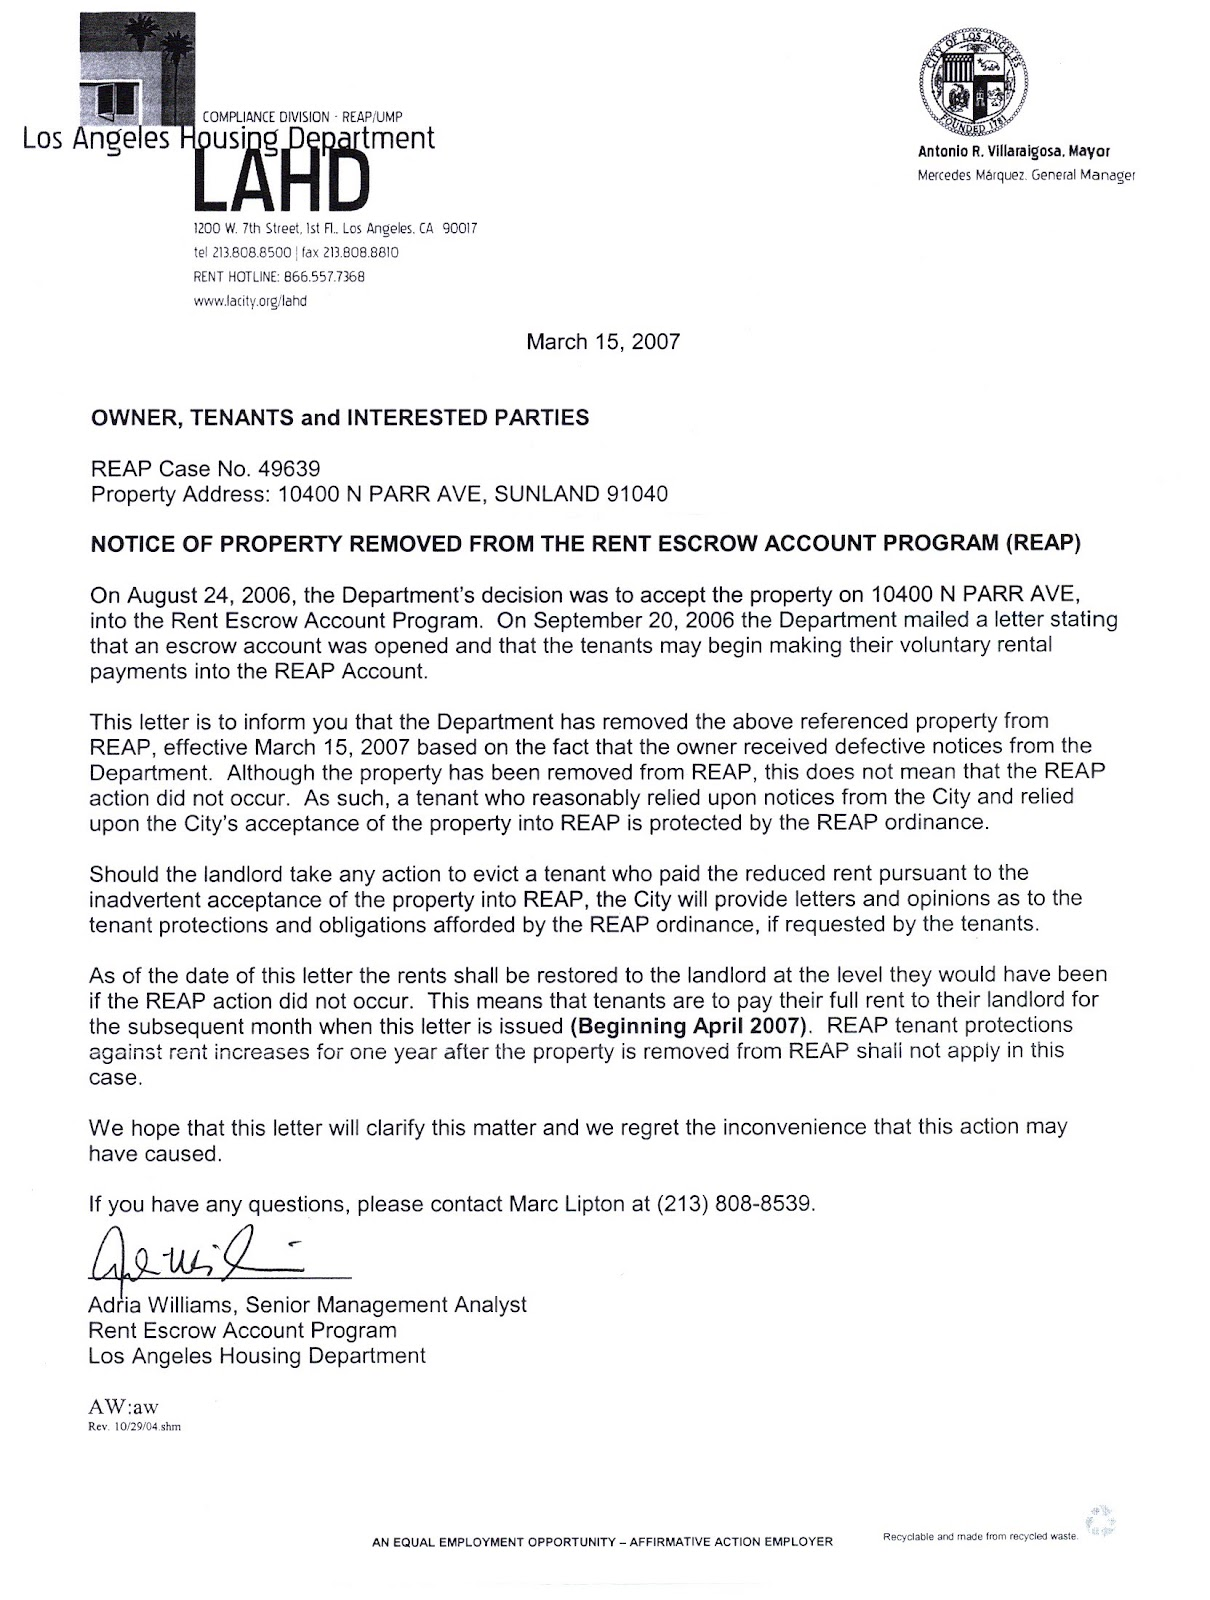 REPORT TO FBI: L A  City Attorney Letter To Property Owner